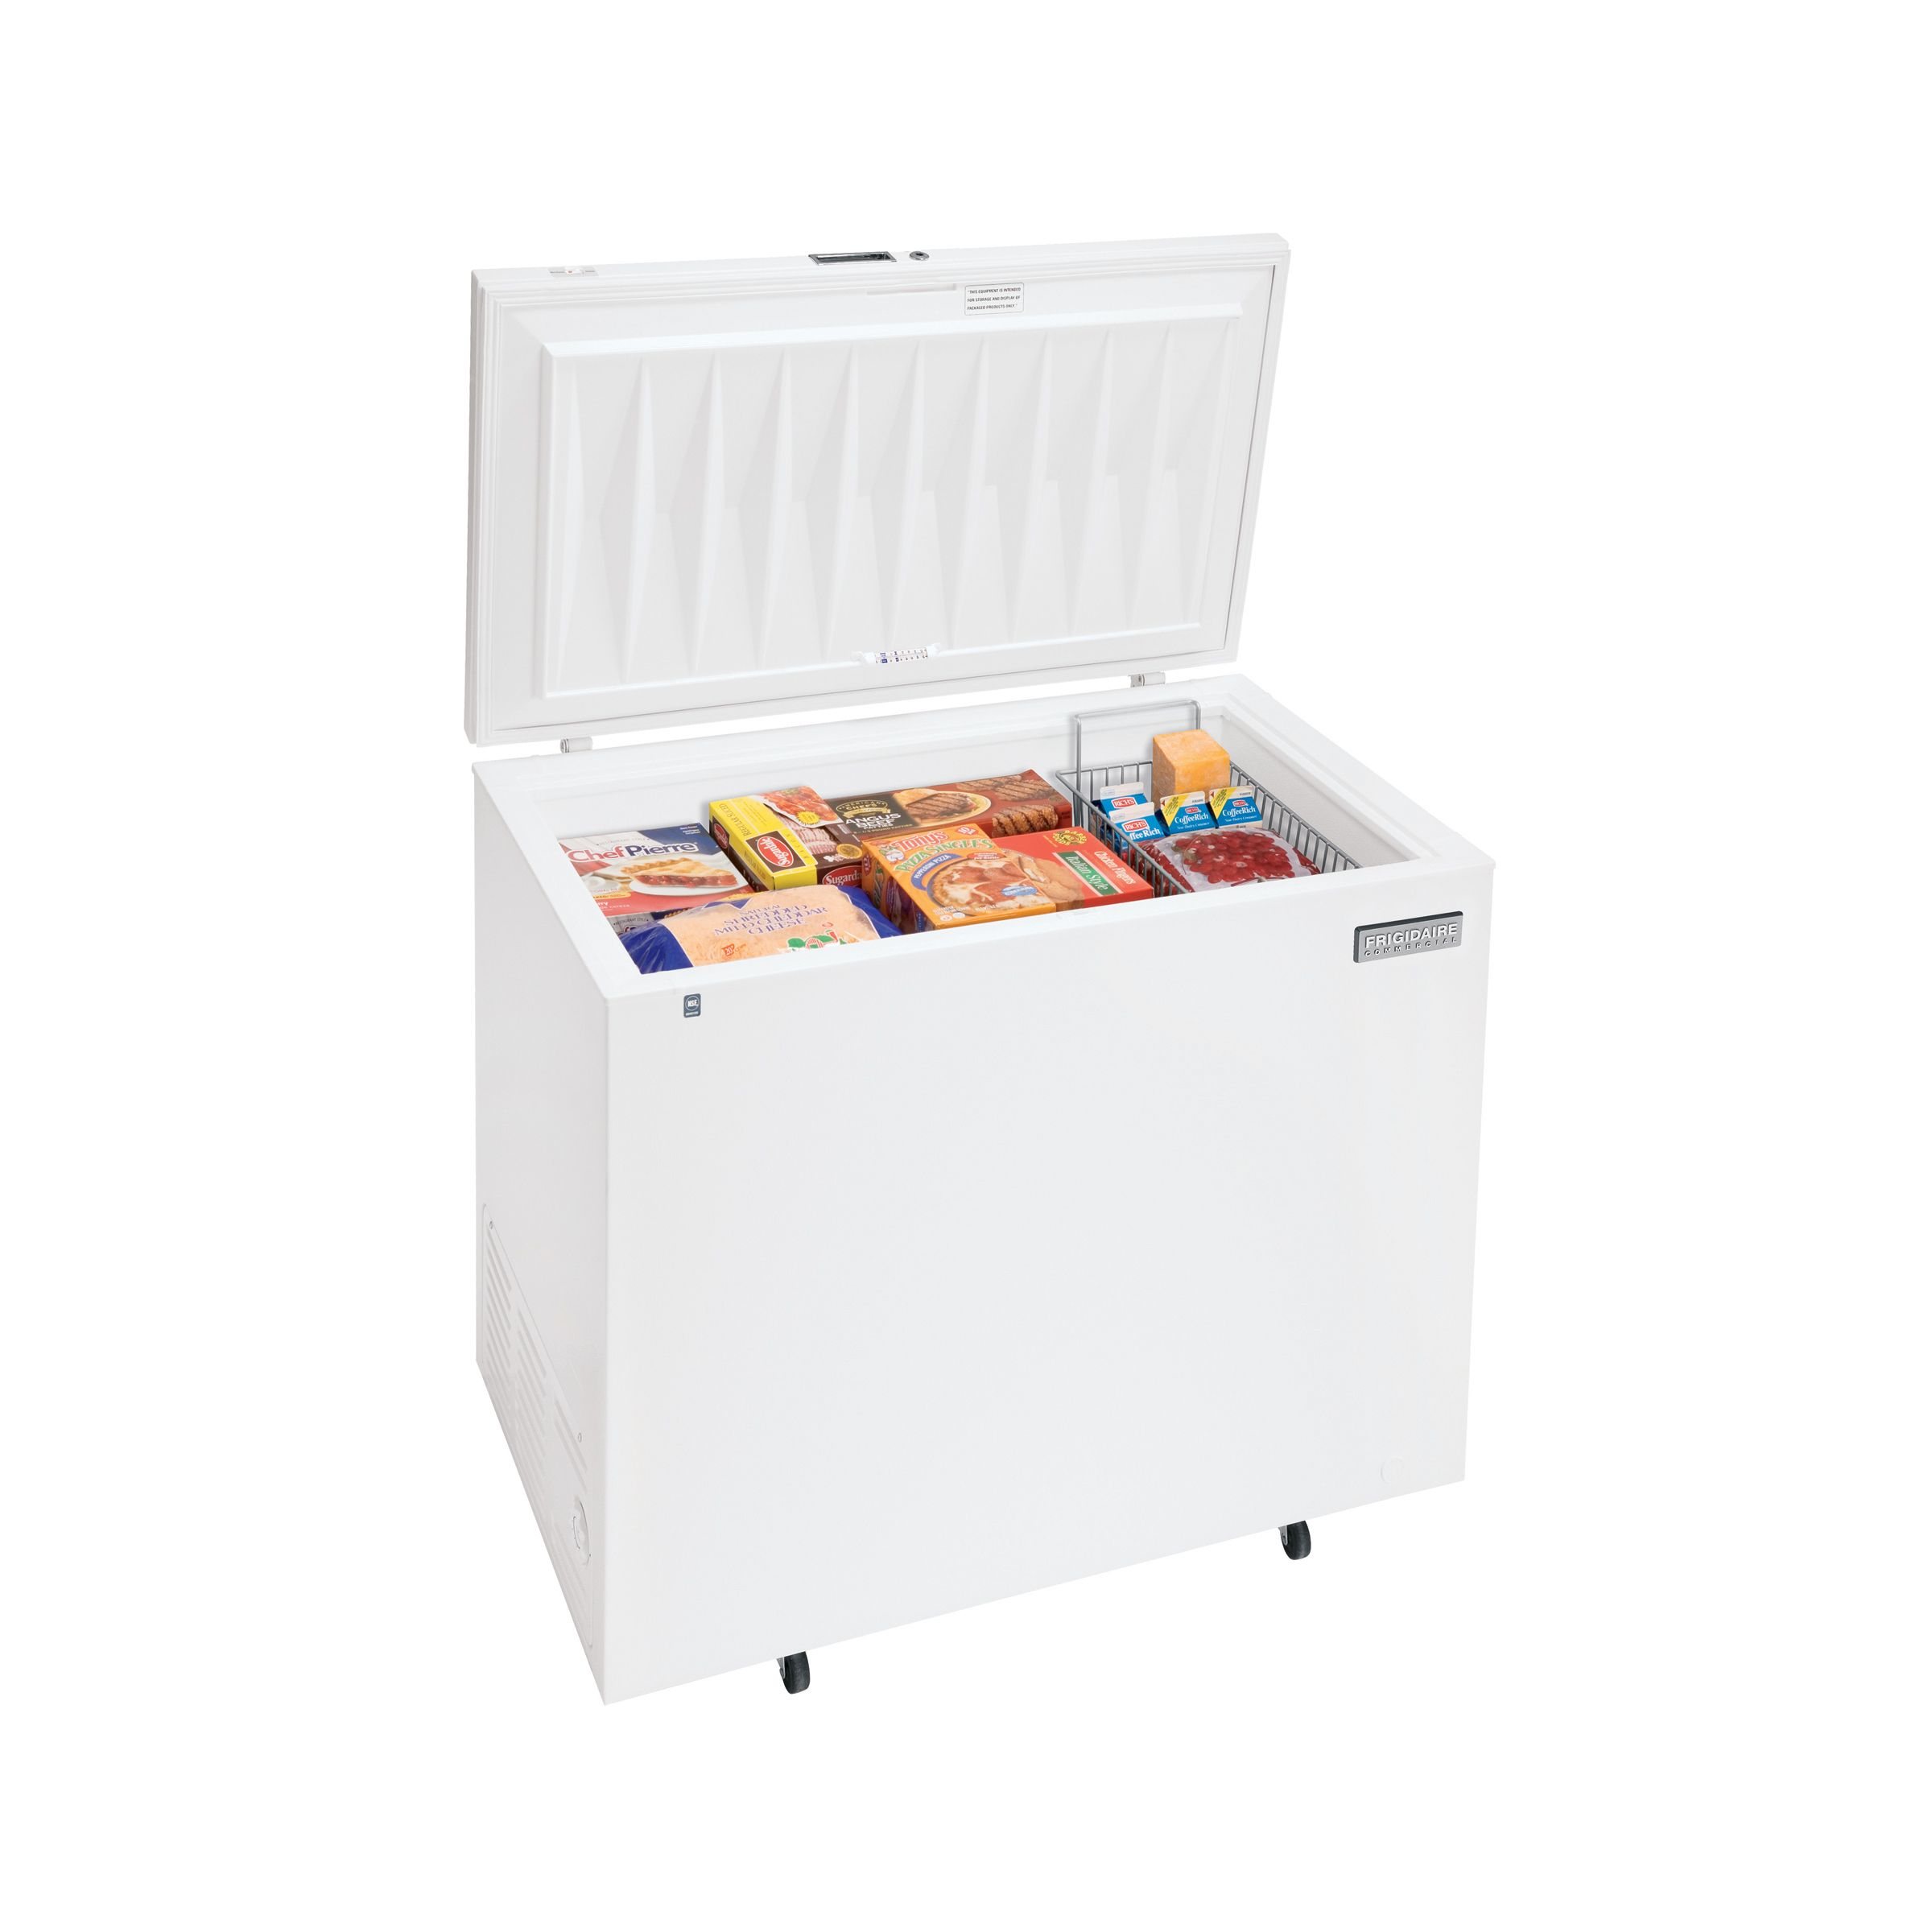 Frigidaire Commercial 7.2 cu. ft. Chest Freezer (FCCS071)